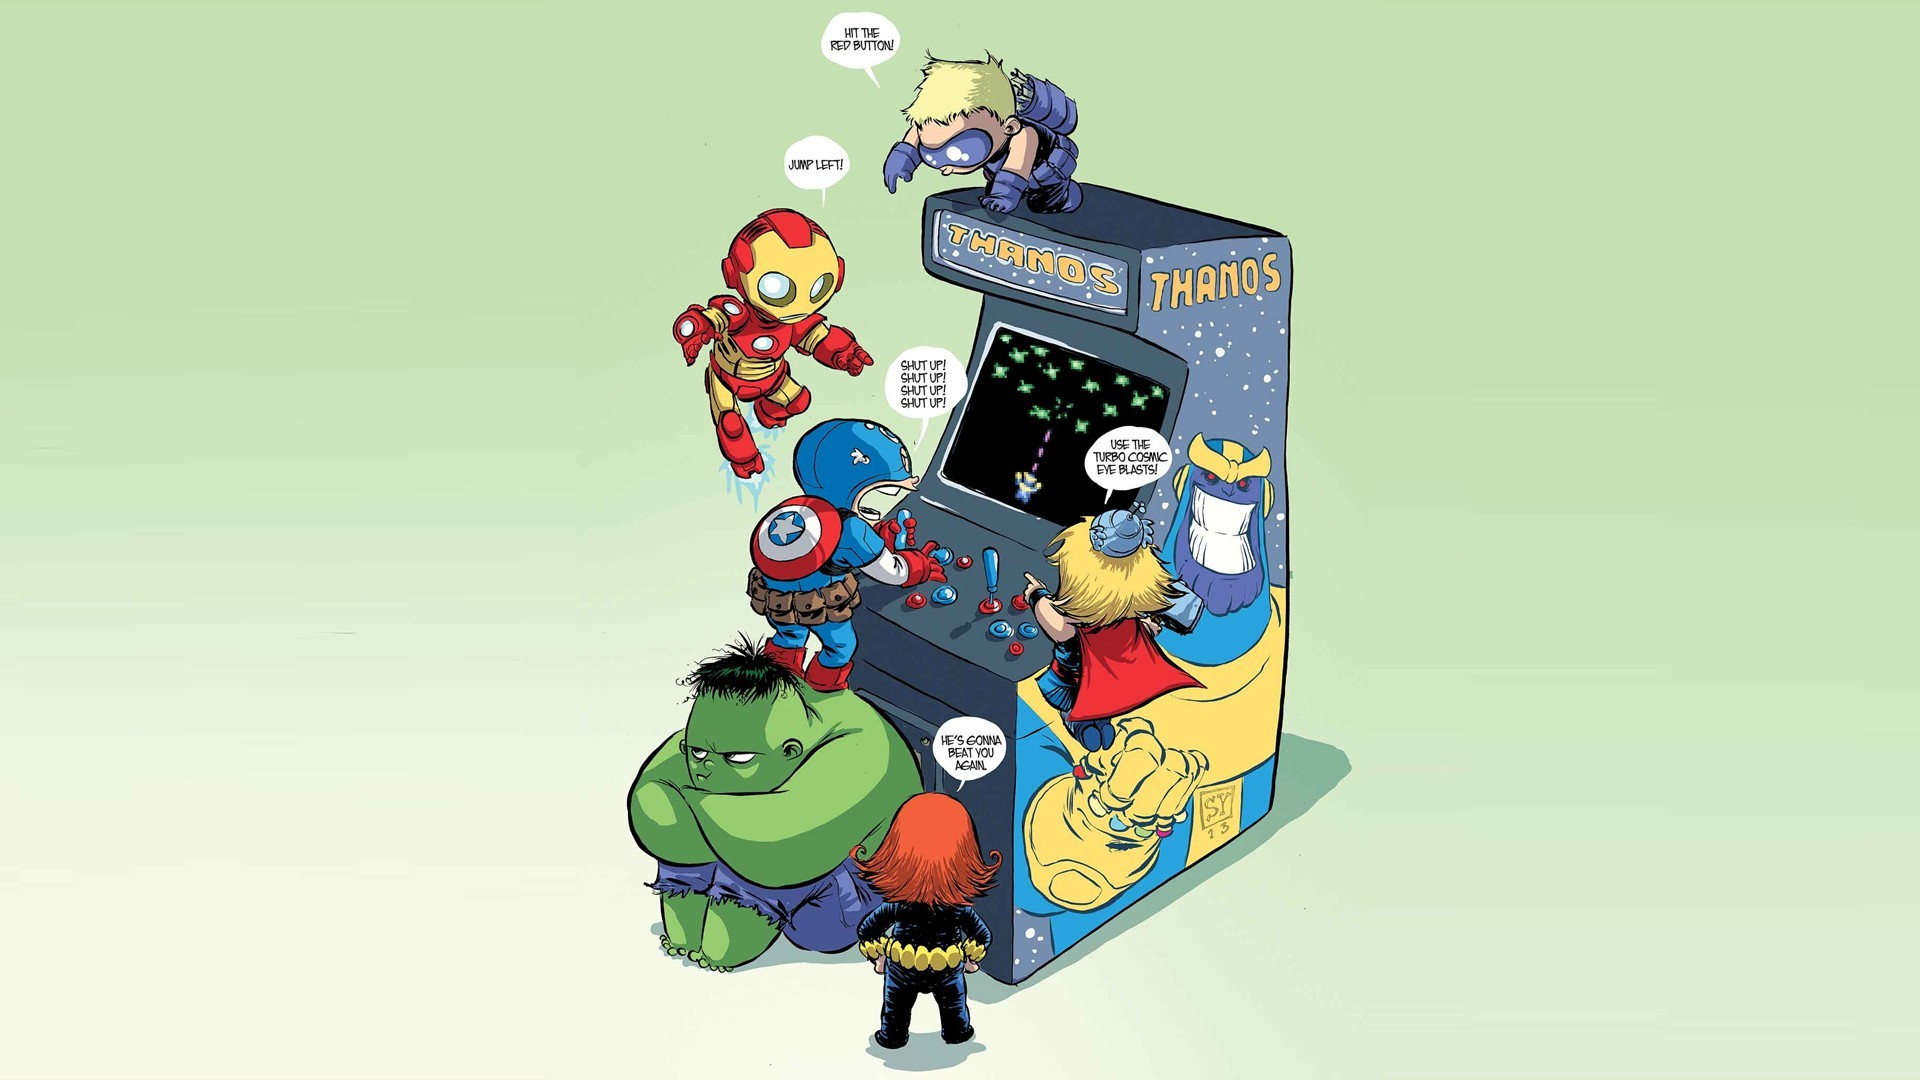 General 1920x1080 Marvel Comics movies Marvel Heroes Iron Man Stark Industries Hulk Captain America Thor Thanos arcade cabinet